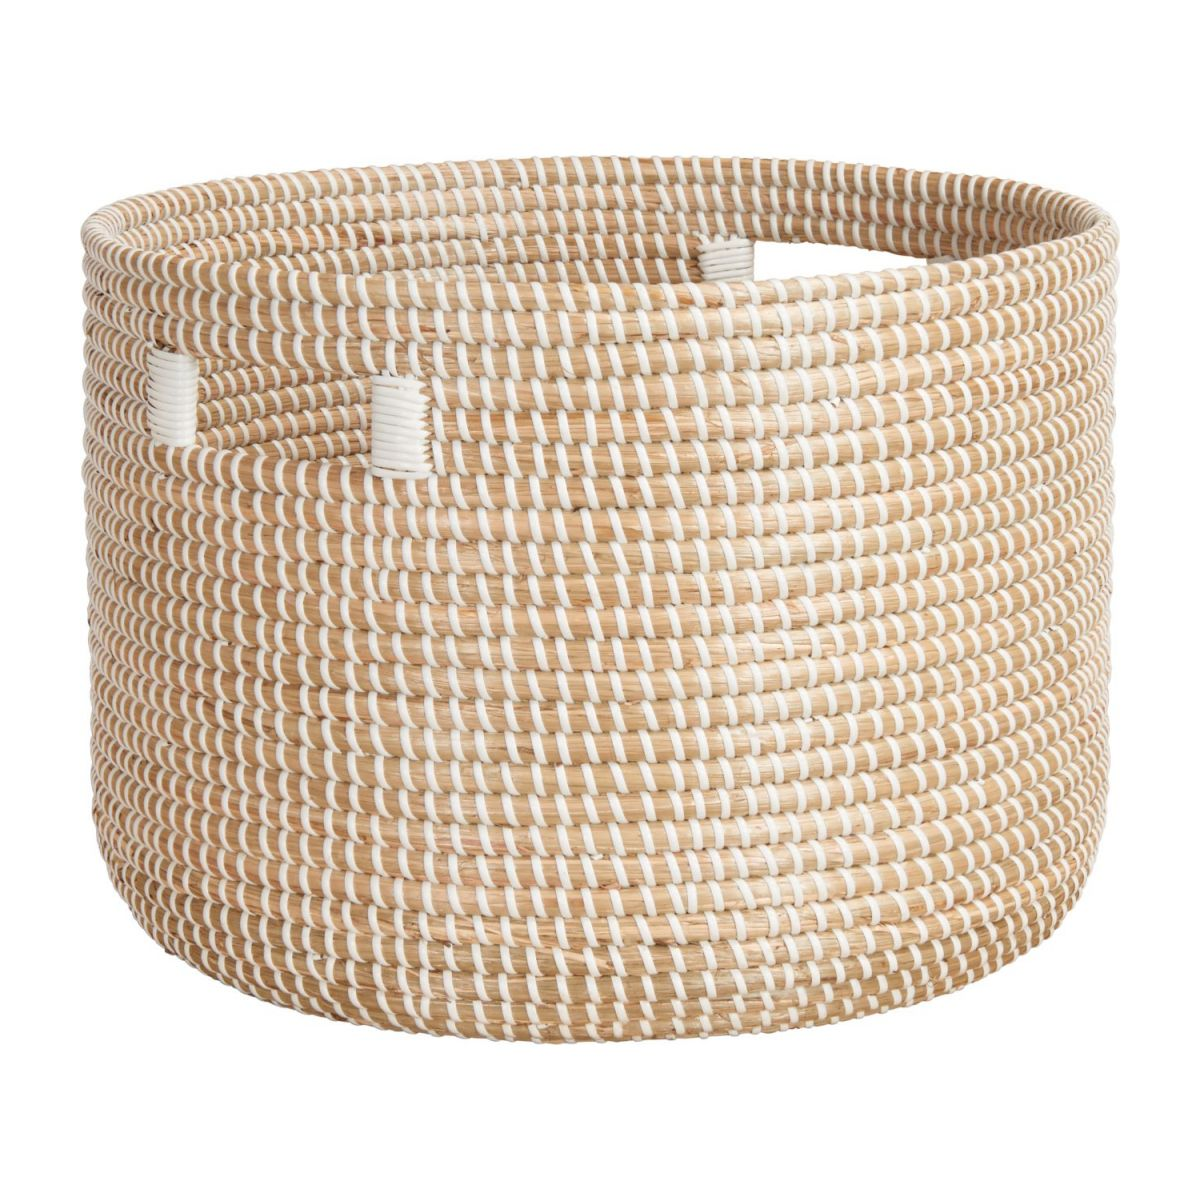 Basket 30cm with storage spaces made of seagrass n°1